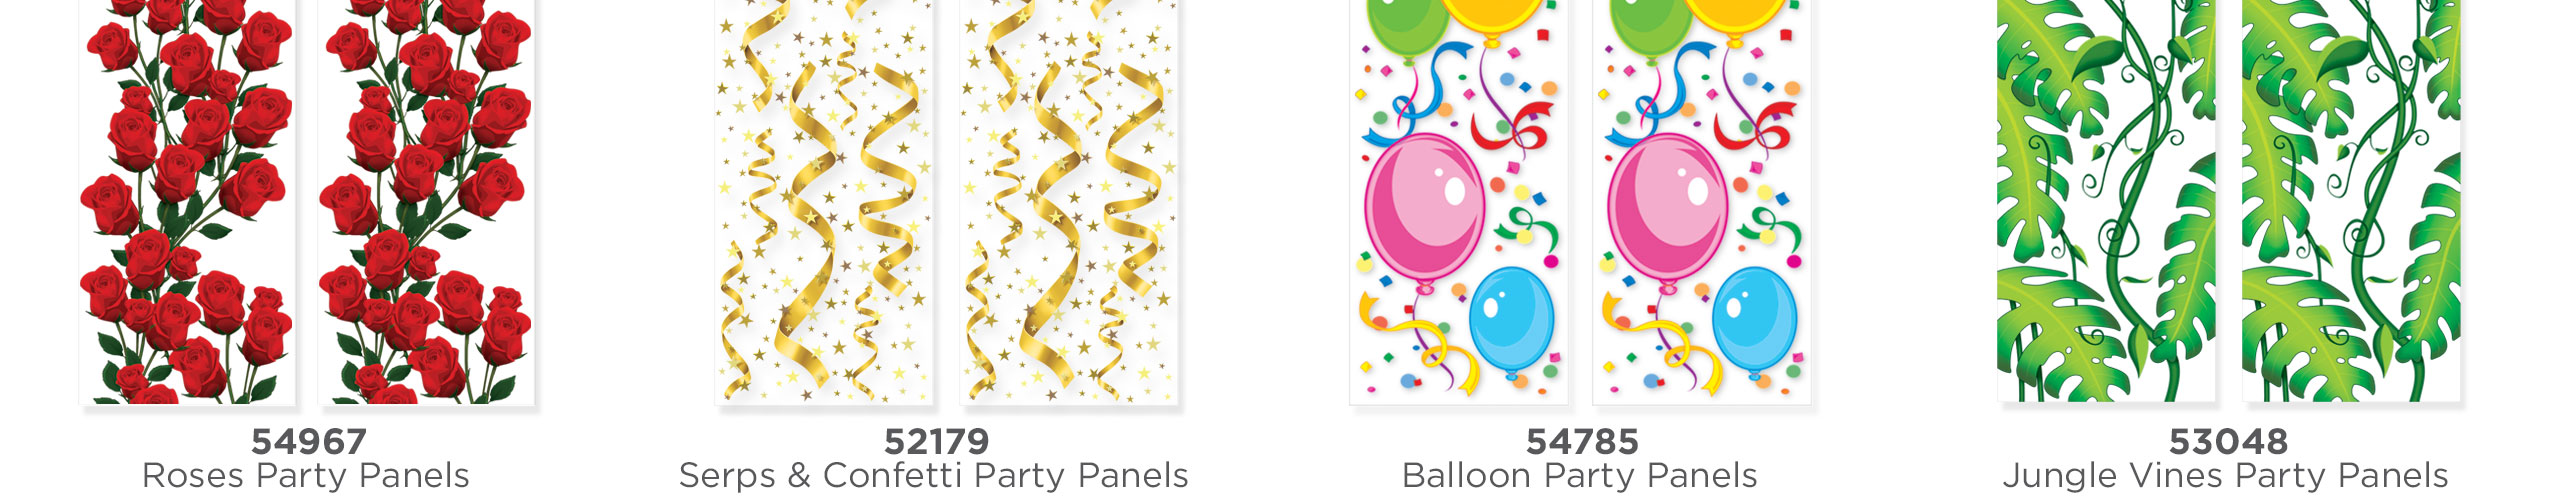 Party Panels